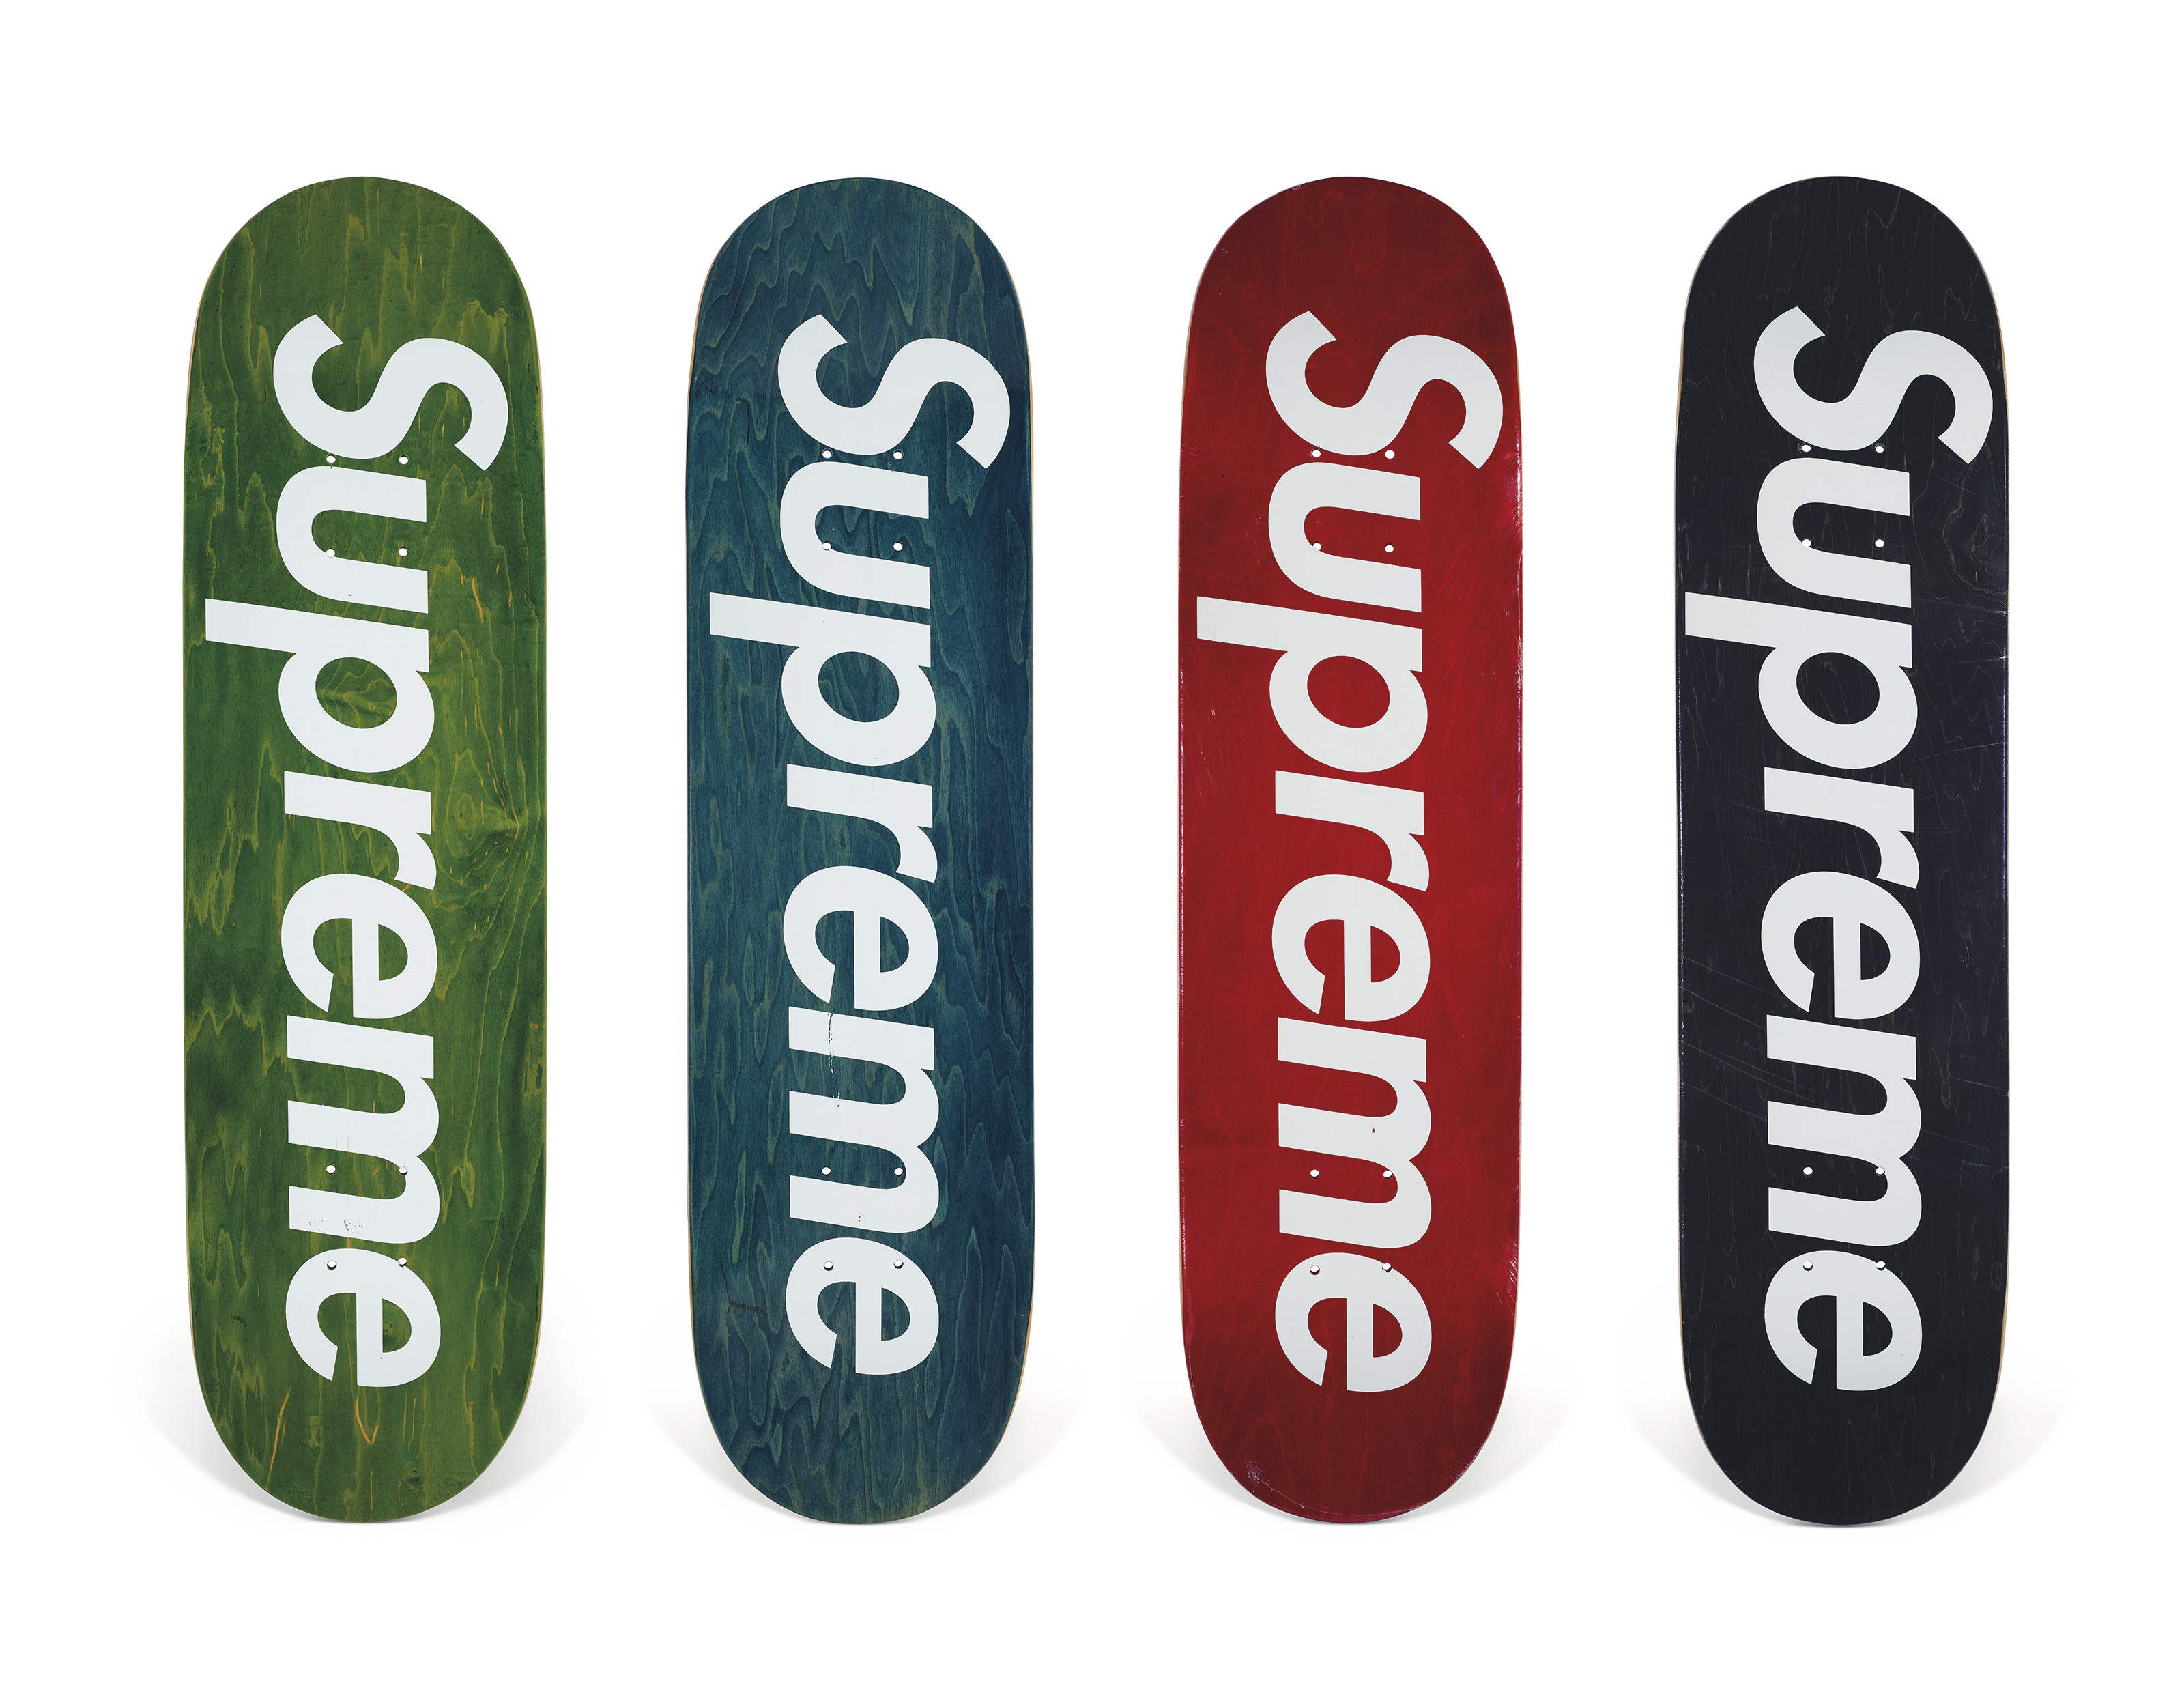 Christie's Offers Largest Collection of Supreme for Auction